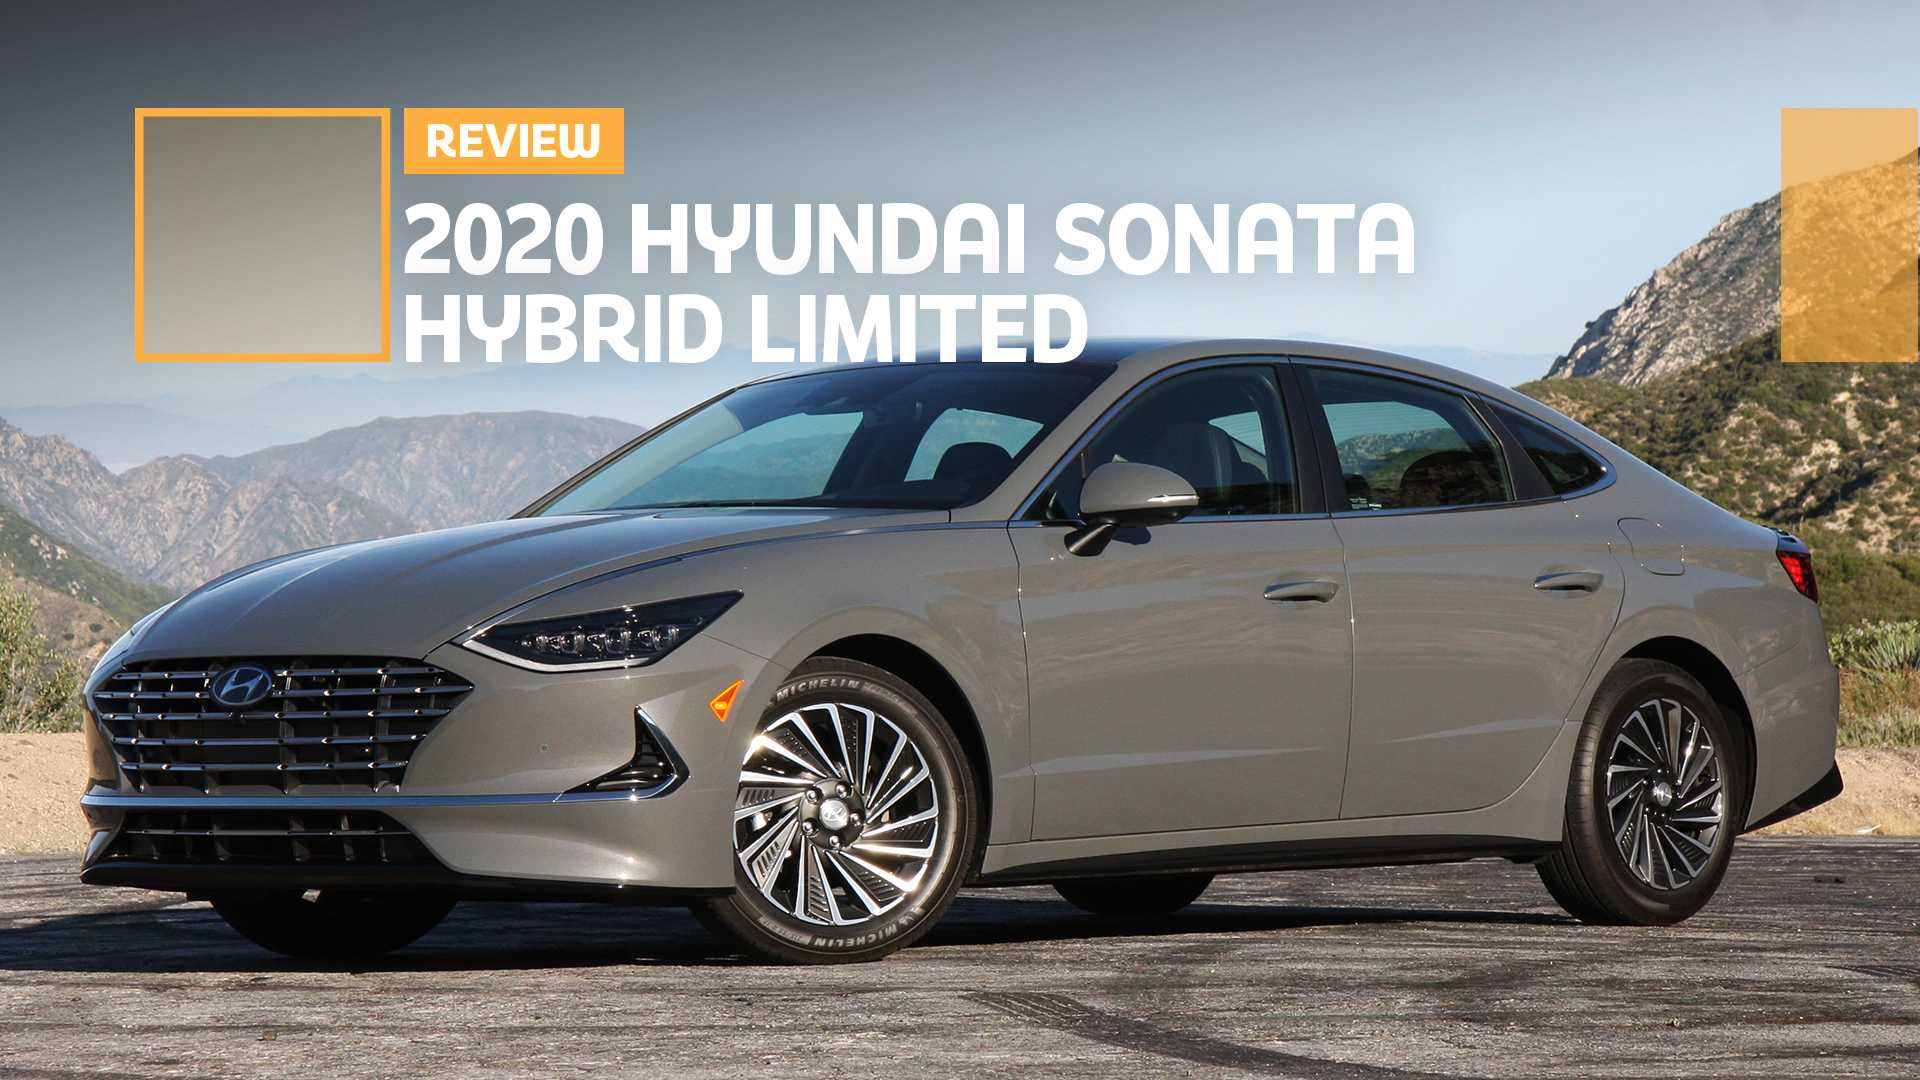 2020 Hyundai Sonata Hybrid Sport Concept and Review